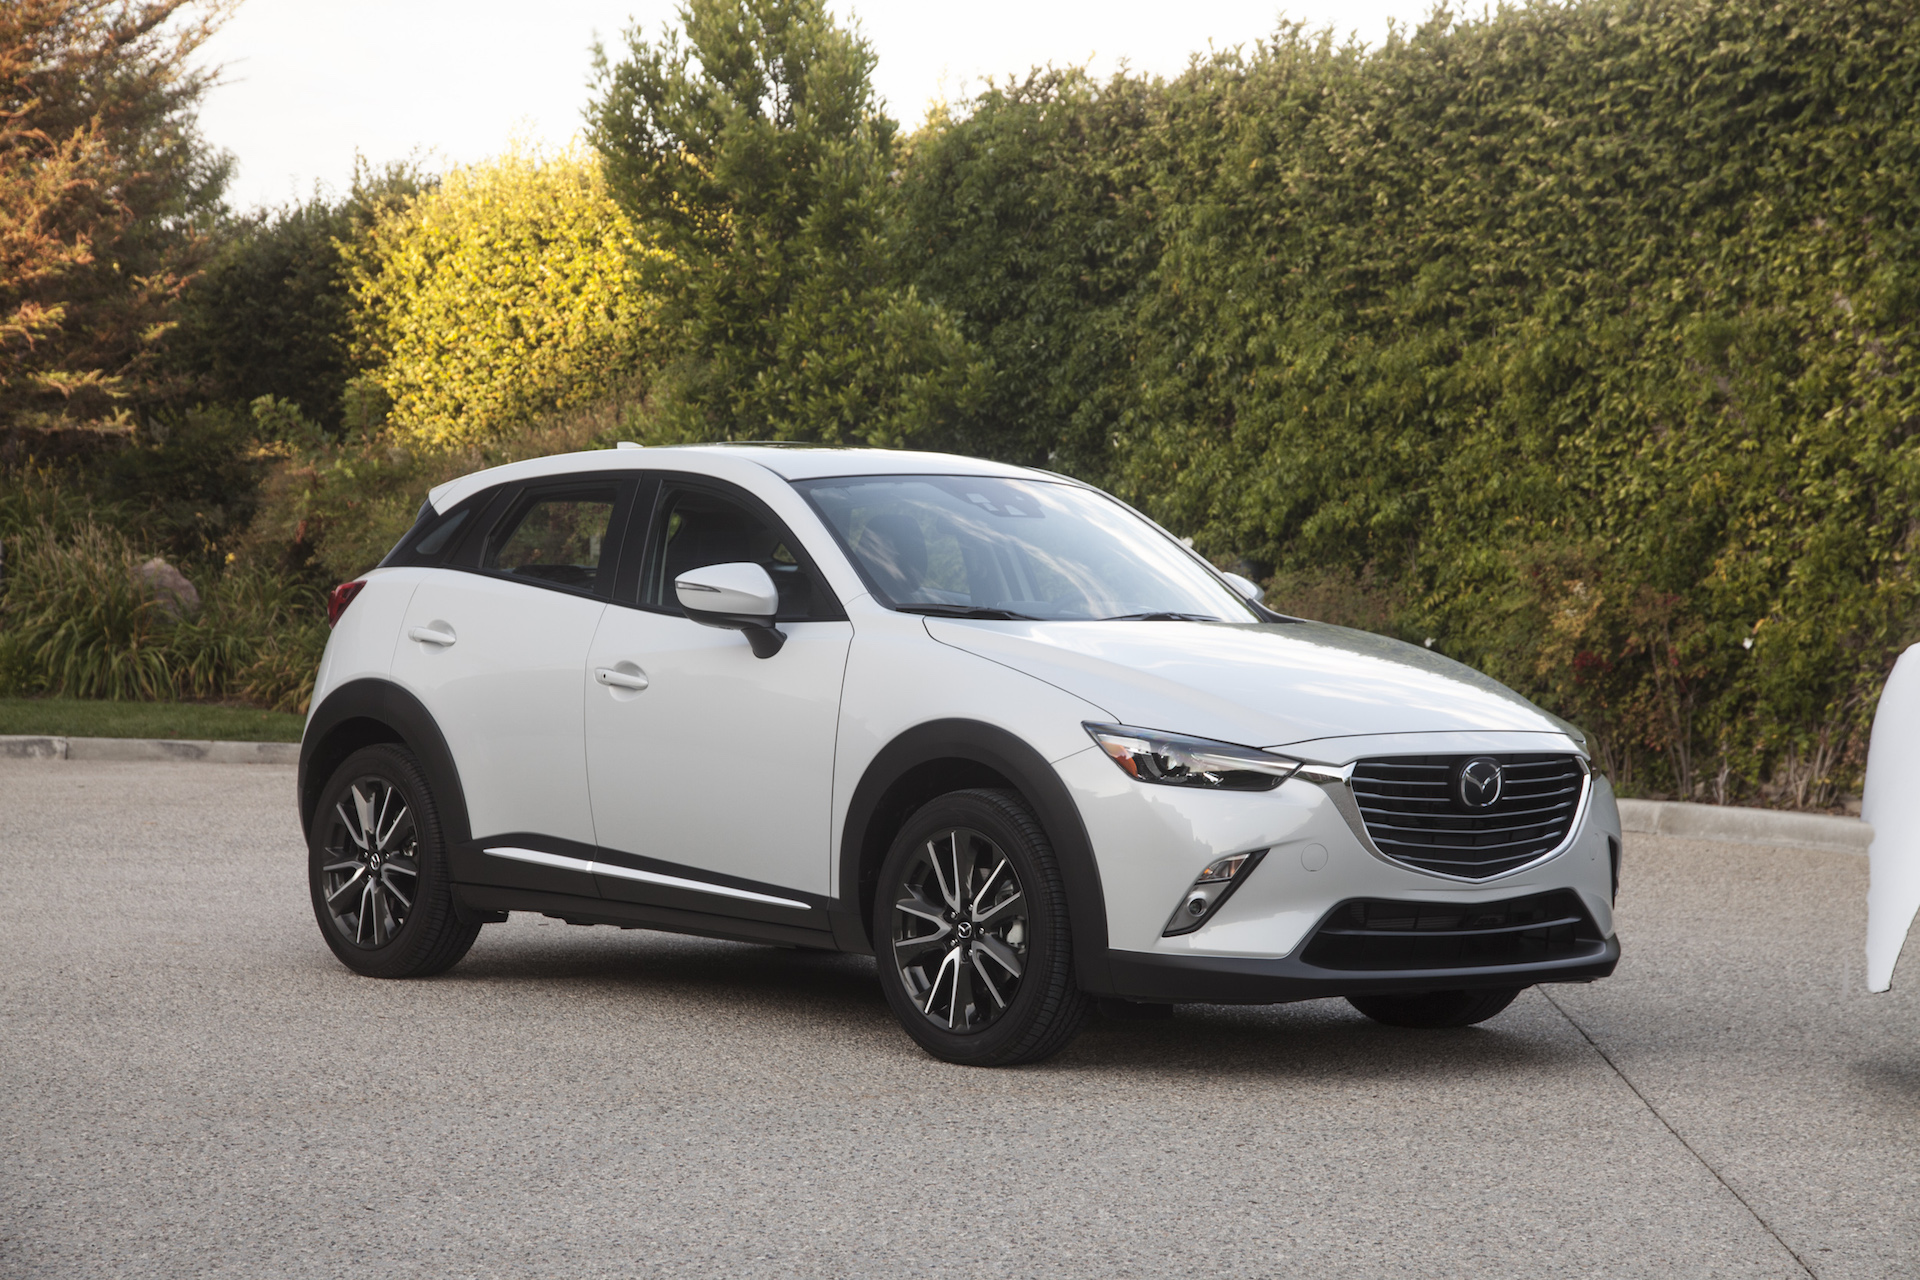 New And Used Mazda Cx 3 Prices Photos Reviews Specs